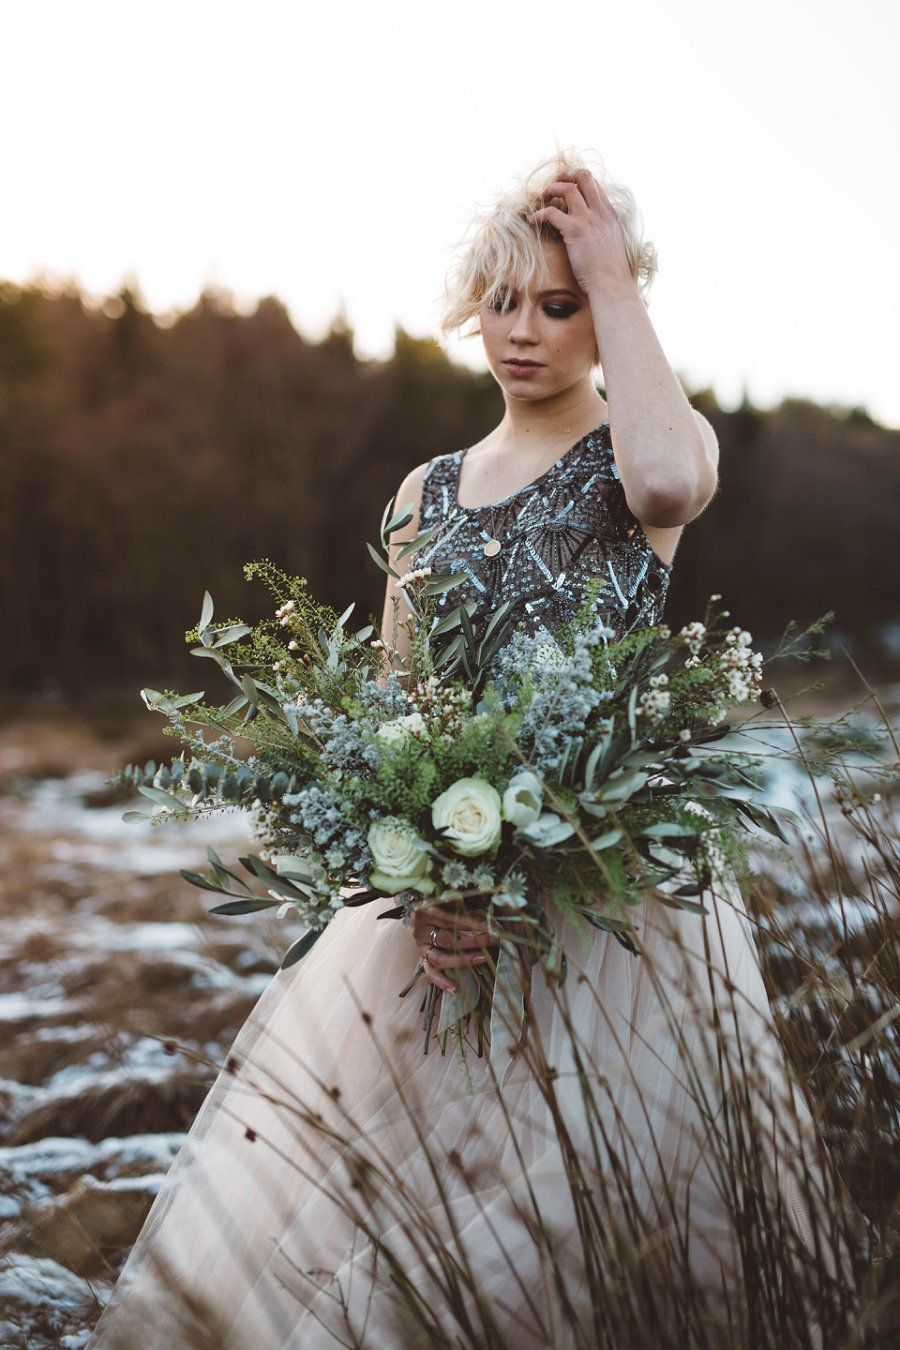 Vintage Wedding Dresses, Tulle Skirts & Sequin Crop Tops! A Wild Winter Bridal Shoot…